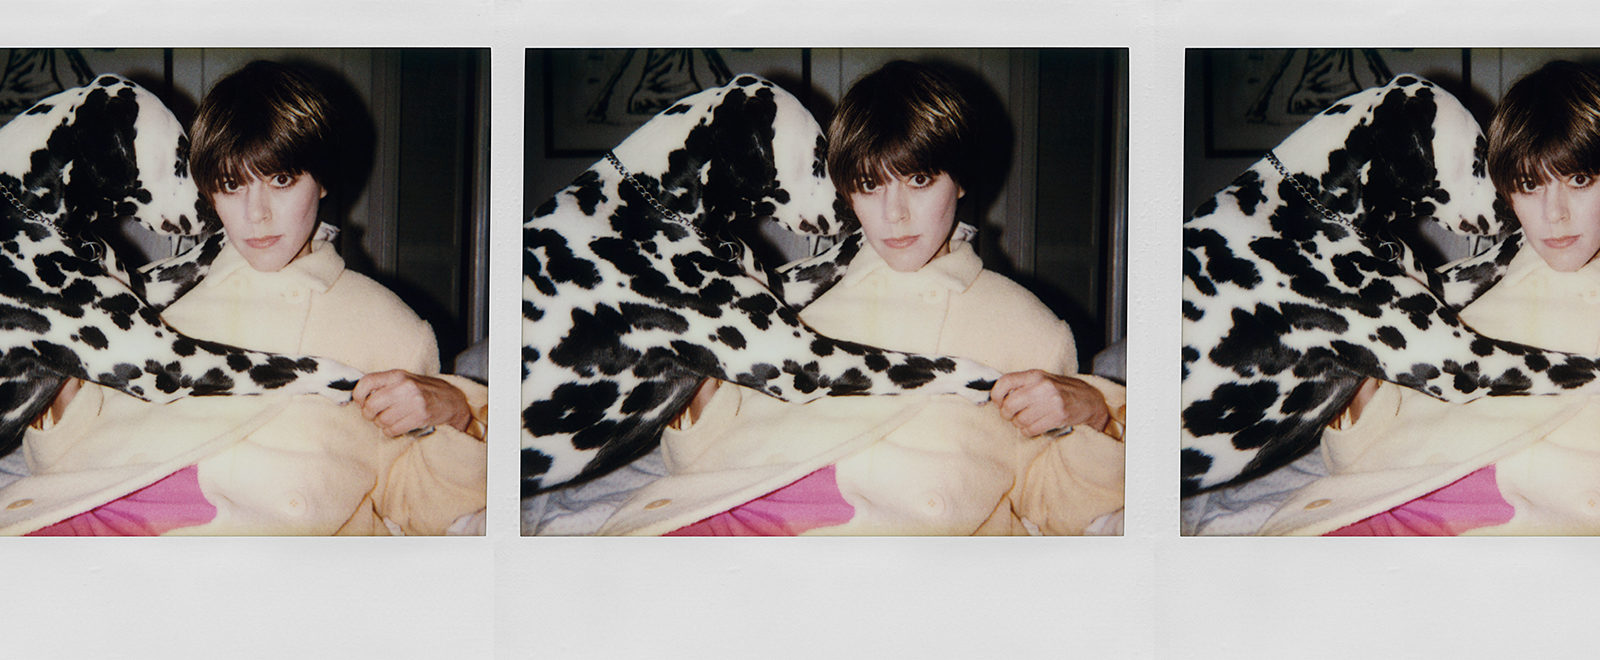 Paige Powell Photographer Interview Gucci Andy Warhol Jean-Michel Basquiat